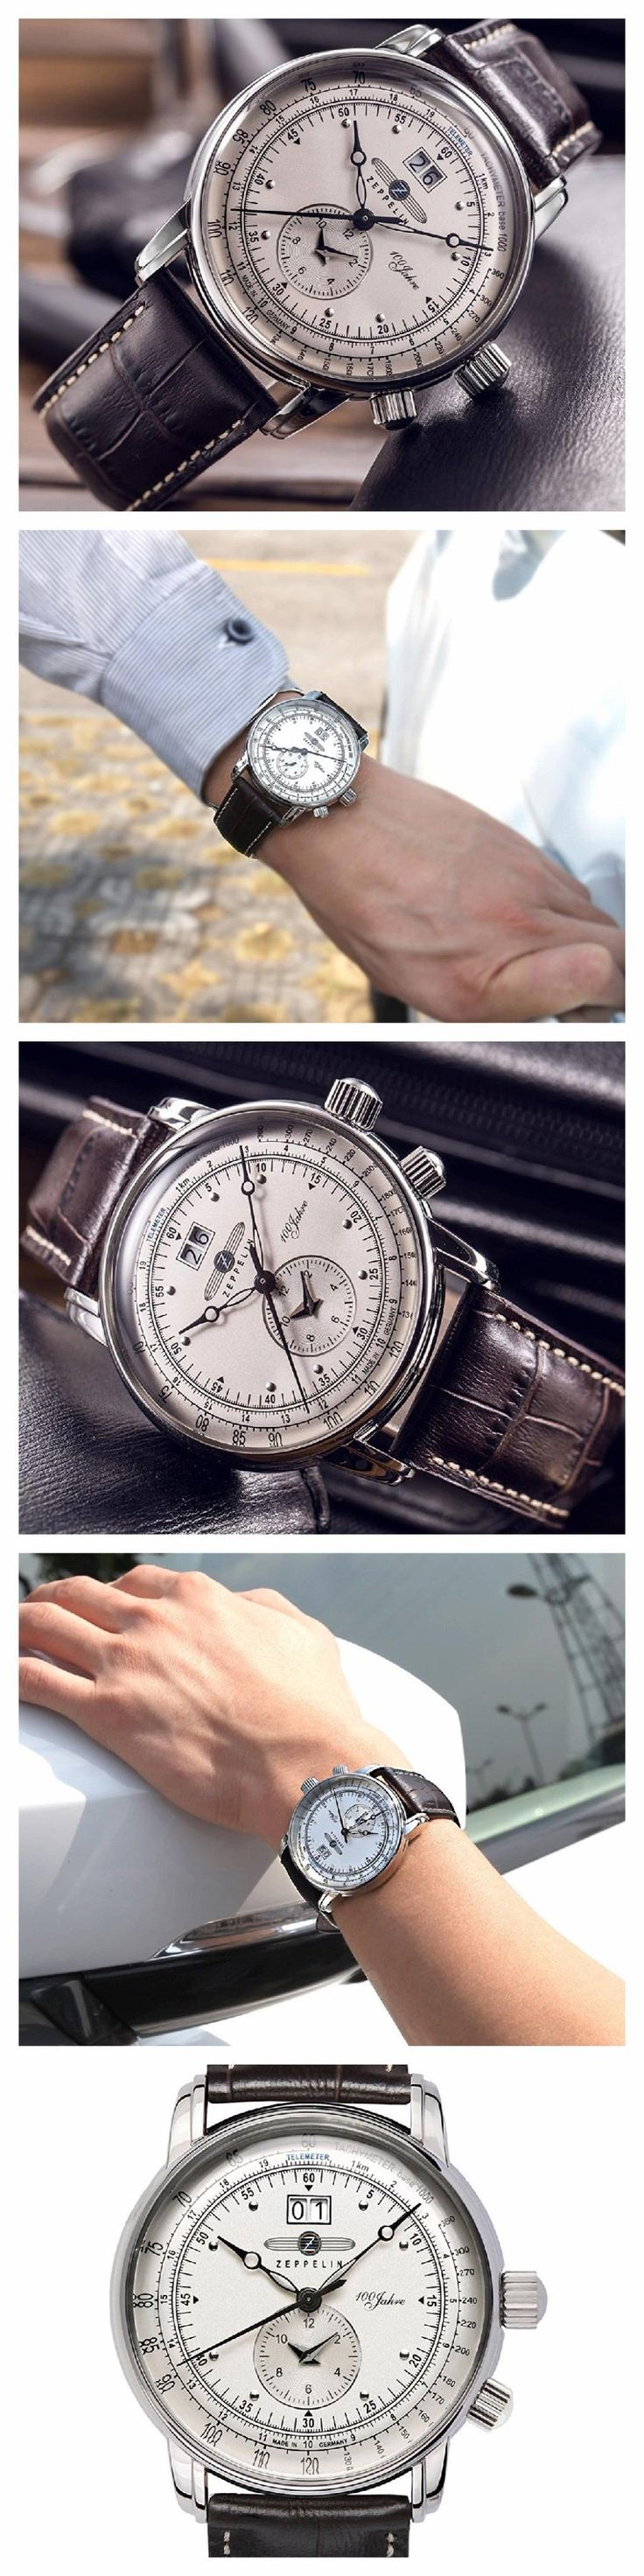 The German adventurer: GRAF ZEPPELIN Dual Time Big Date 100 Years. Style and precision. In ordnung.  #GRAFZEPPELIN  #KhaValeri  https://ro.pinterest.com/KhaValeri/    kha_amz_ZEPdualtime0905_v14